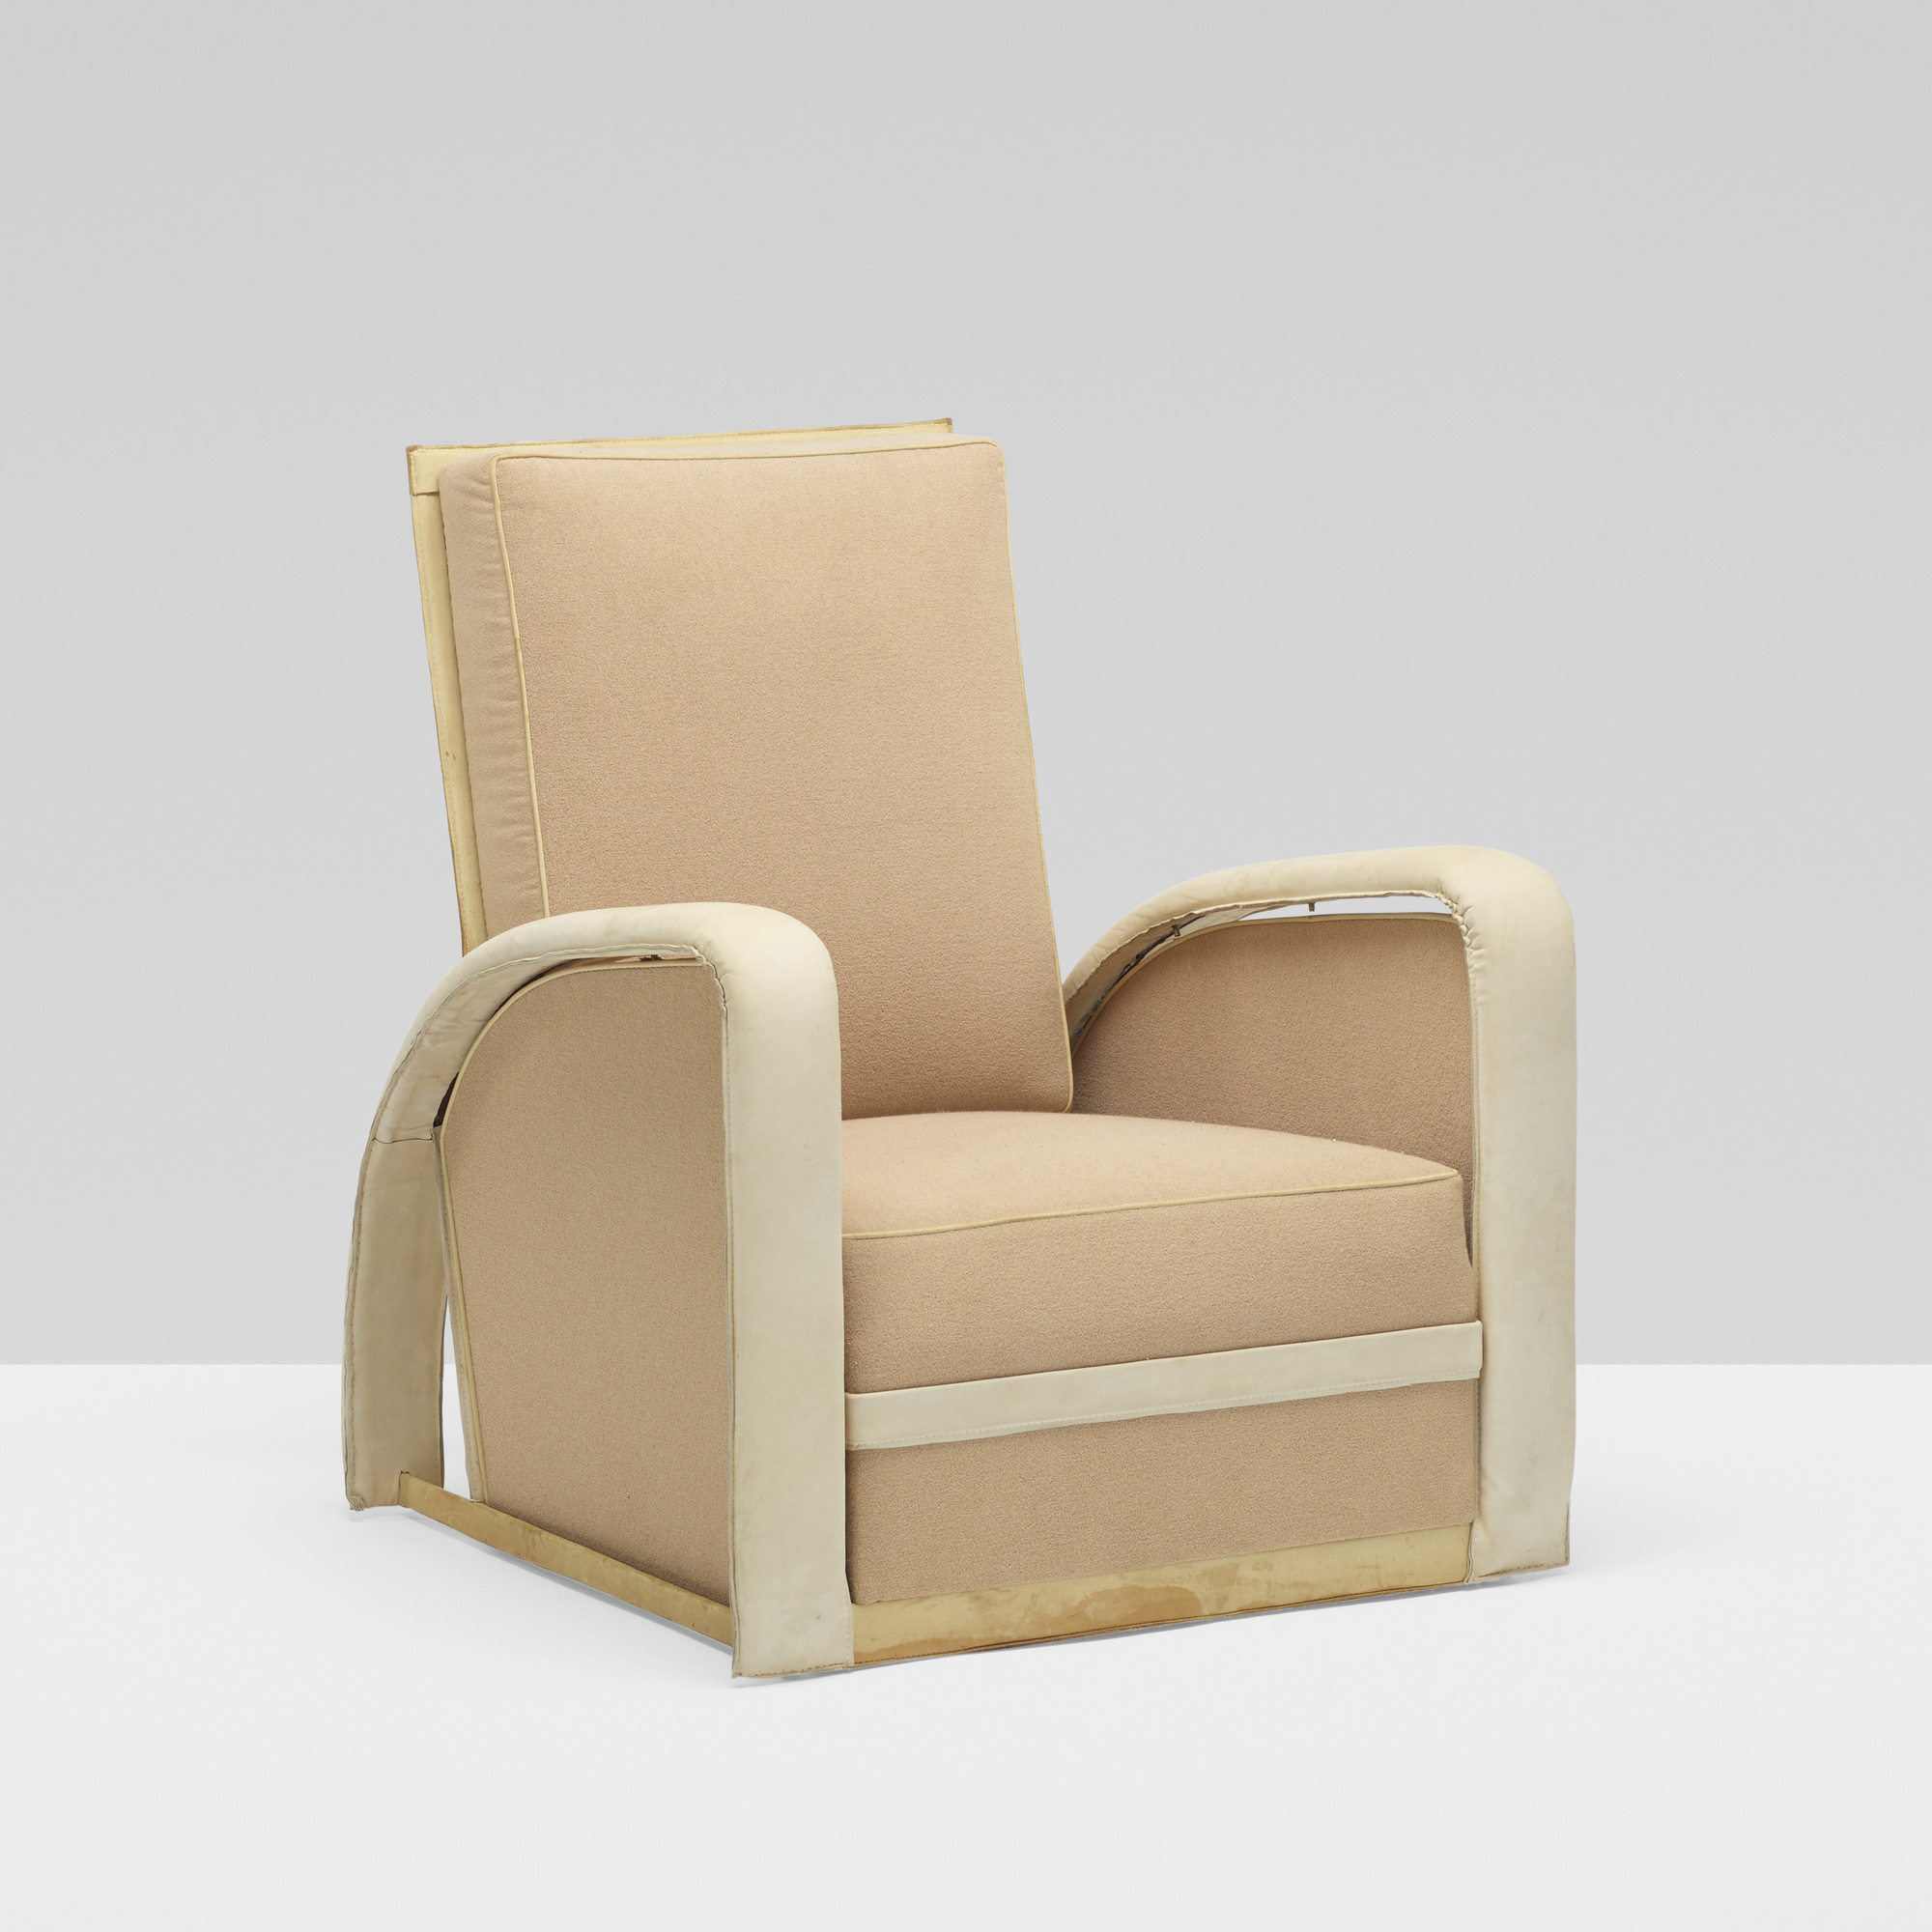 398: Jacques Adnet / armchair (2 of 4)